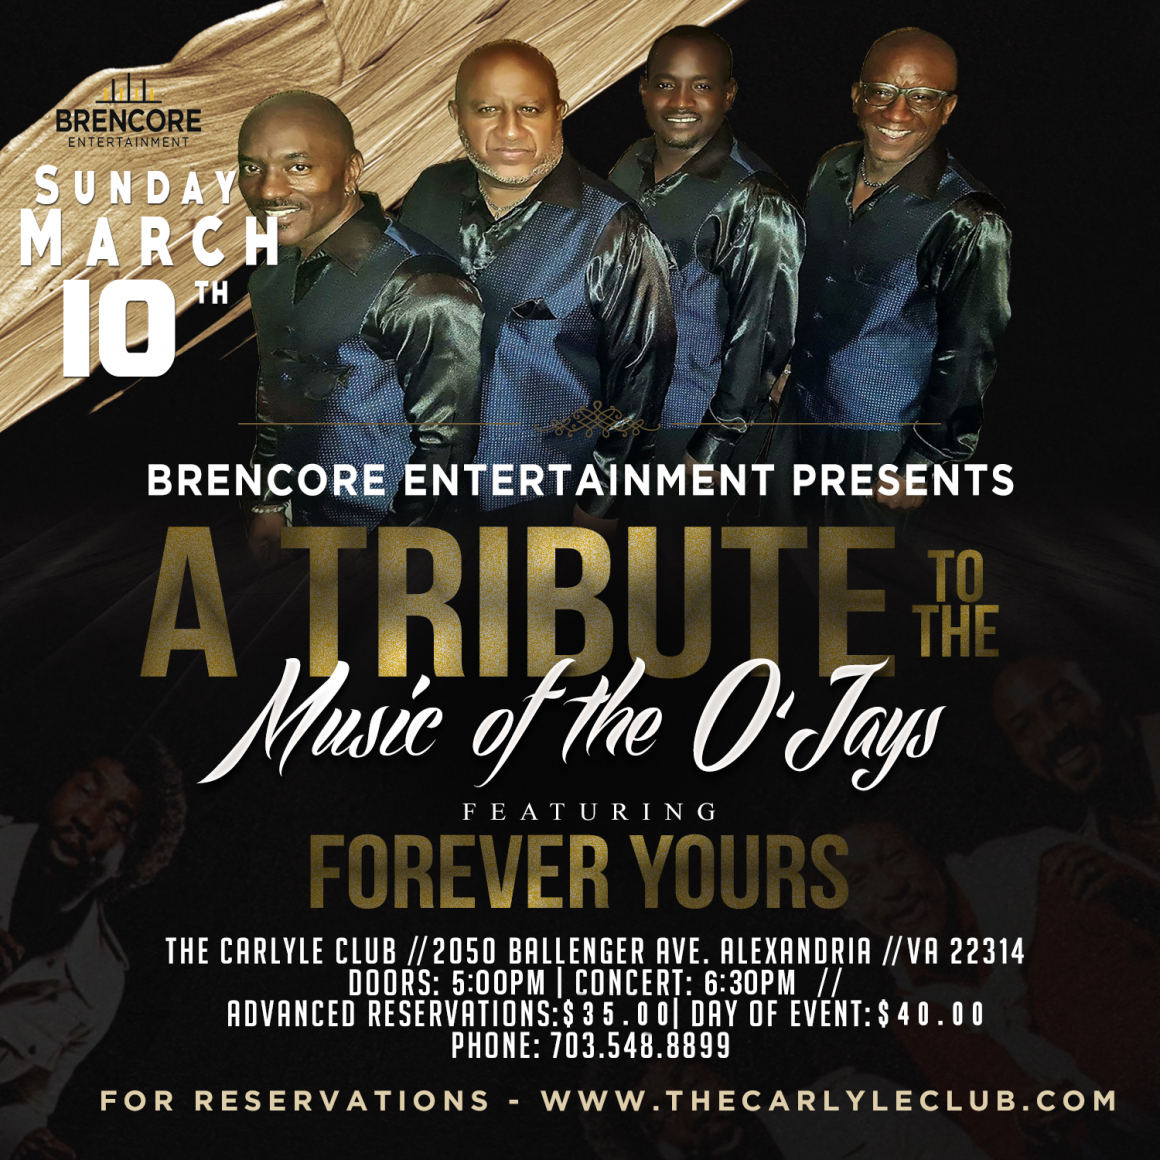 A Tribute to the Music of the O'Jays